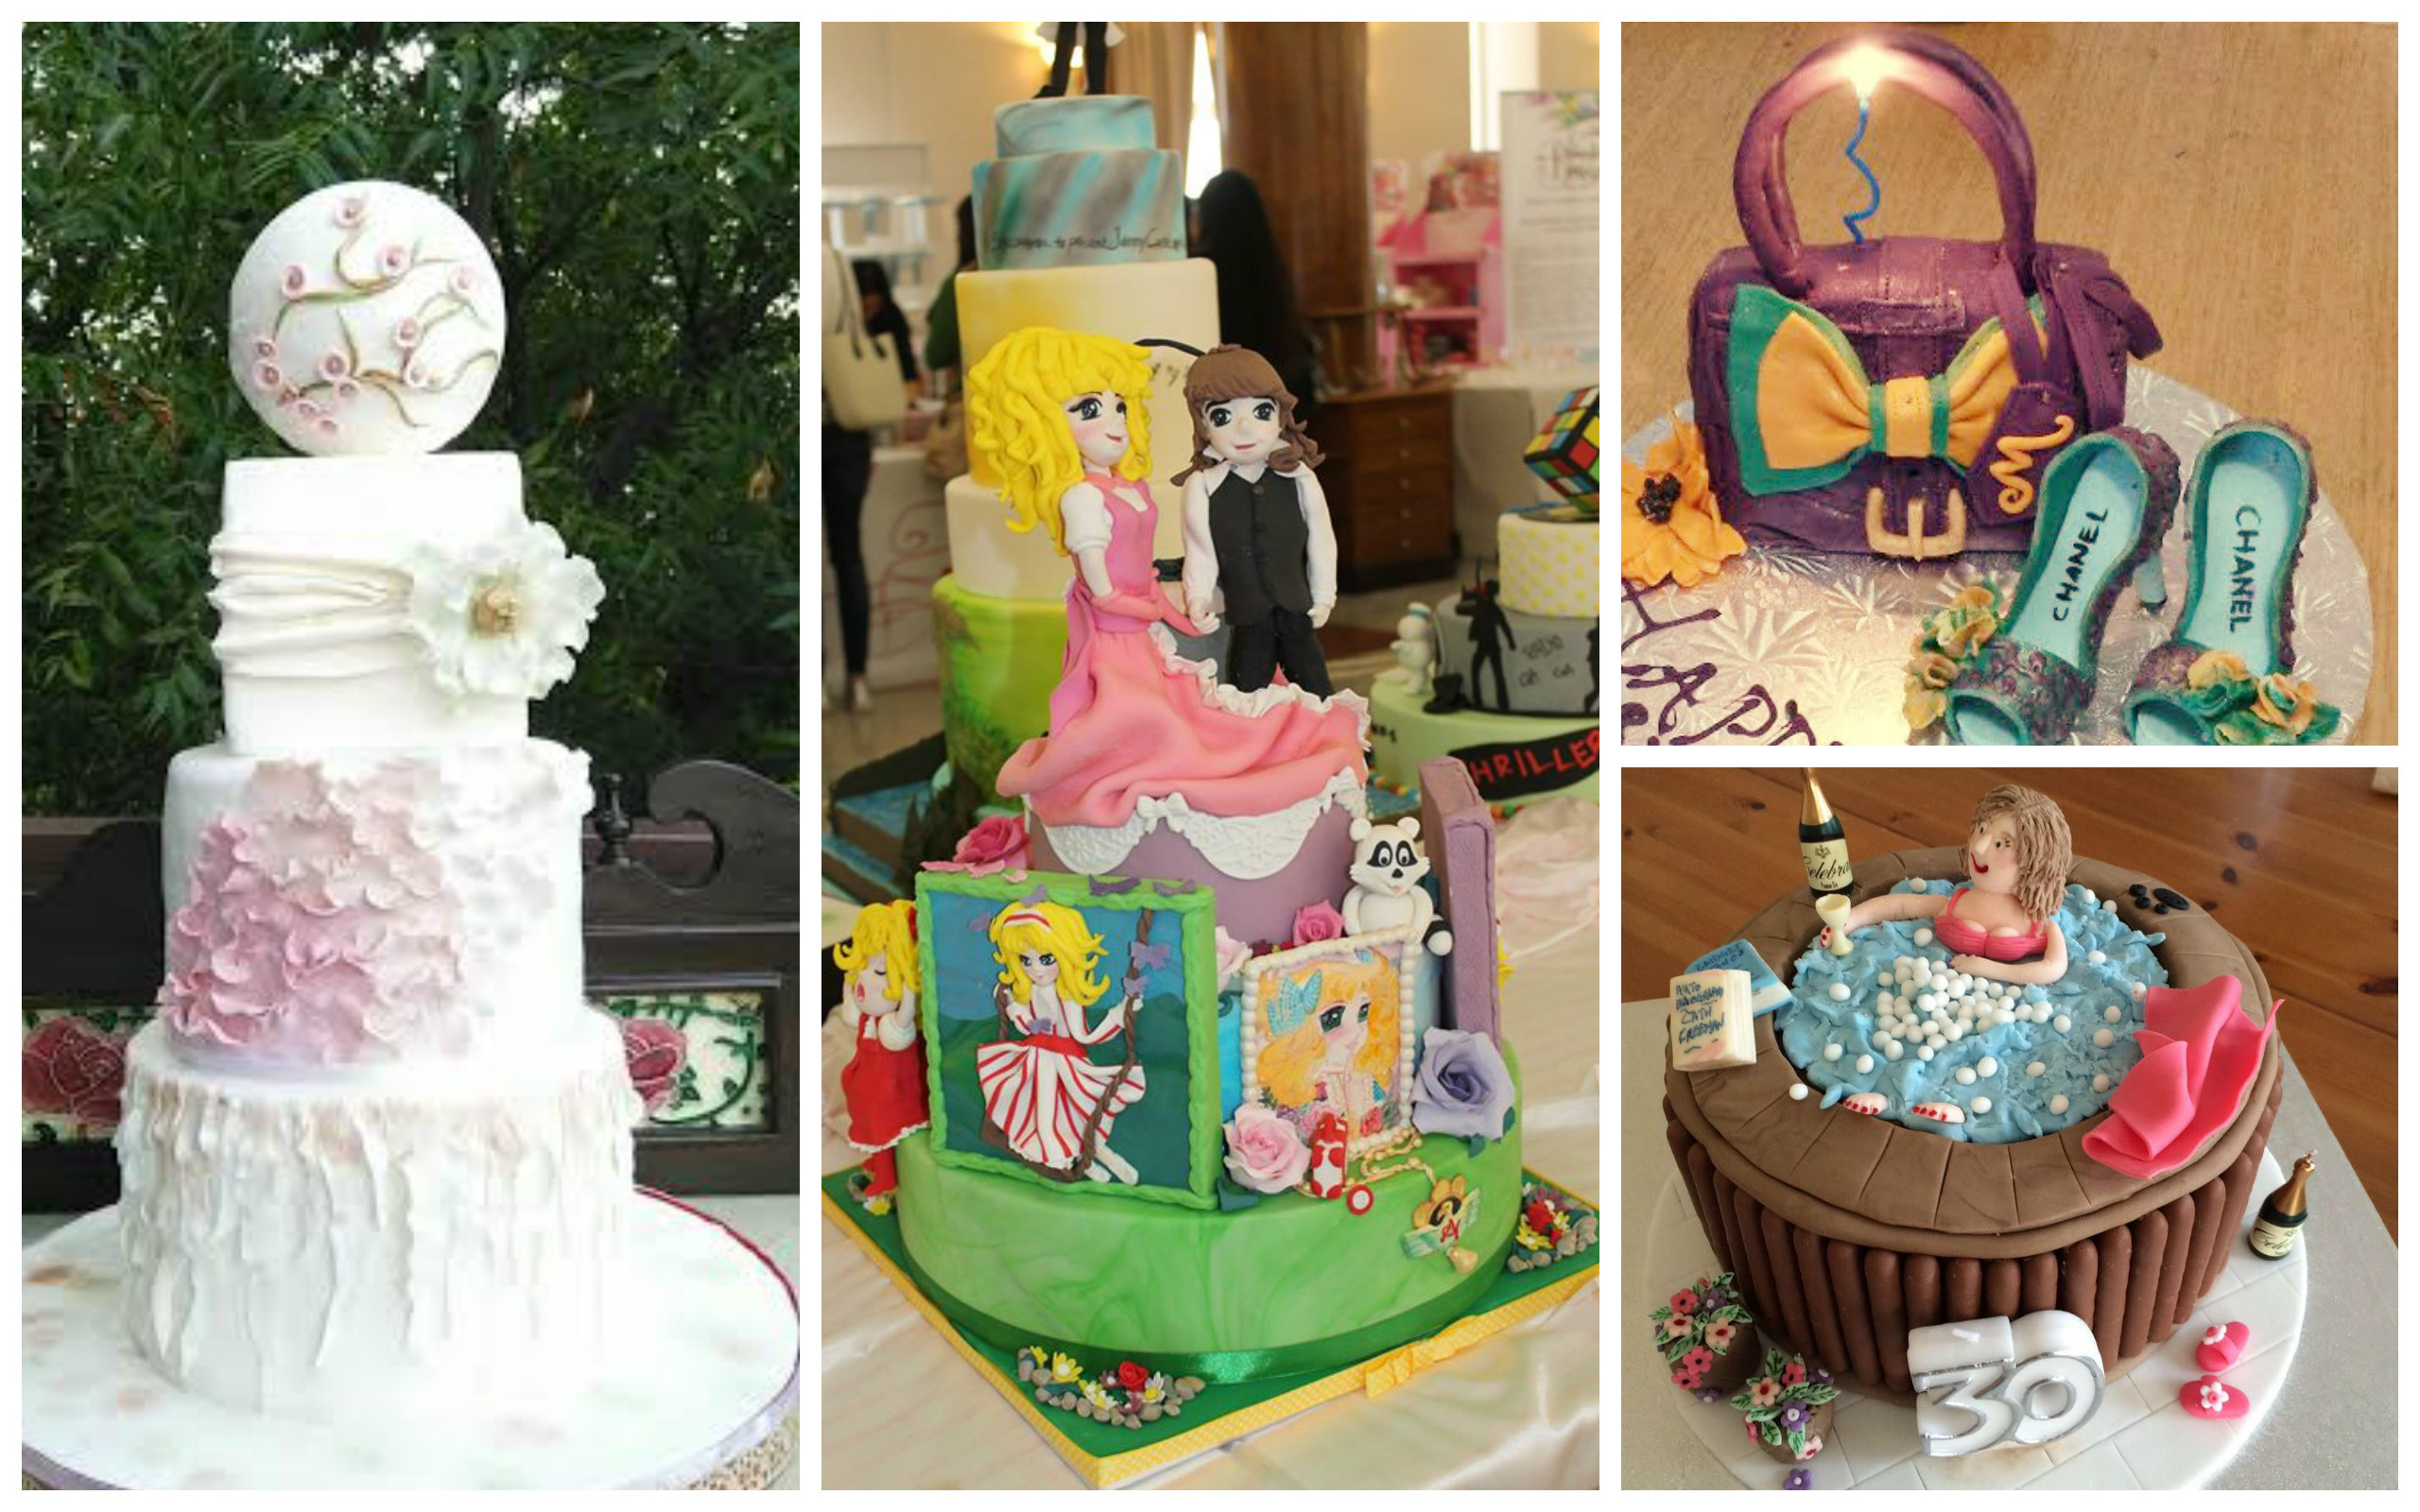 Cake Design Competition : Competition: Artist of the World s Super Astonishing Cake ...